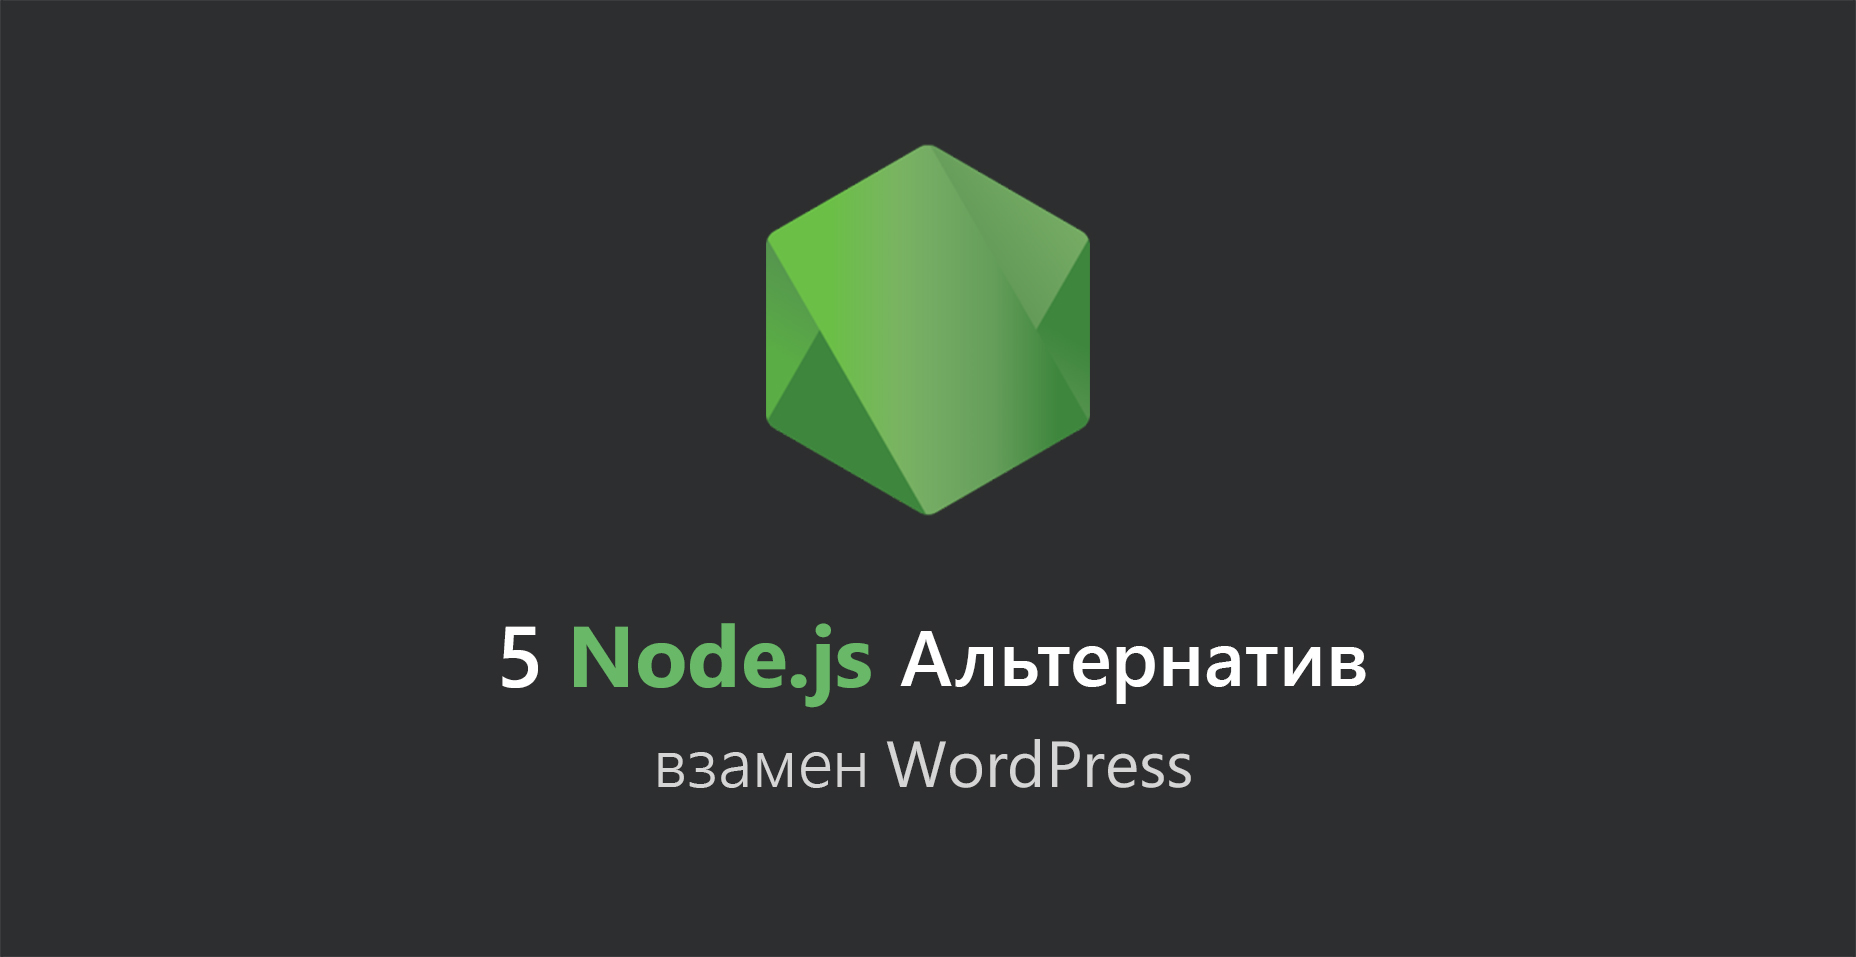 5-nodejs-alternatives-to-wordpress